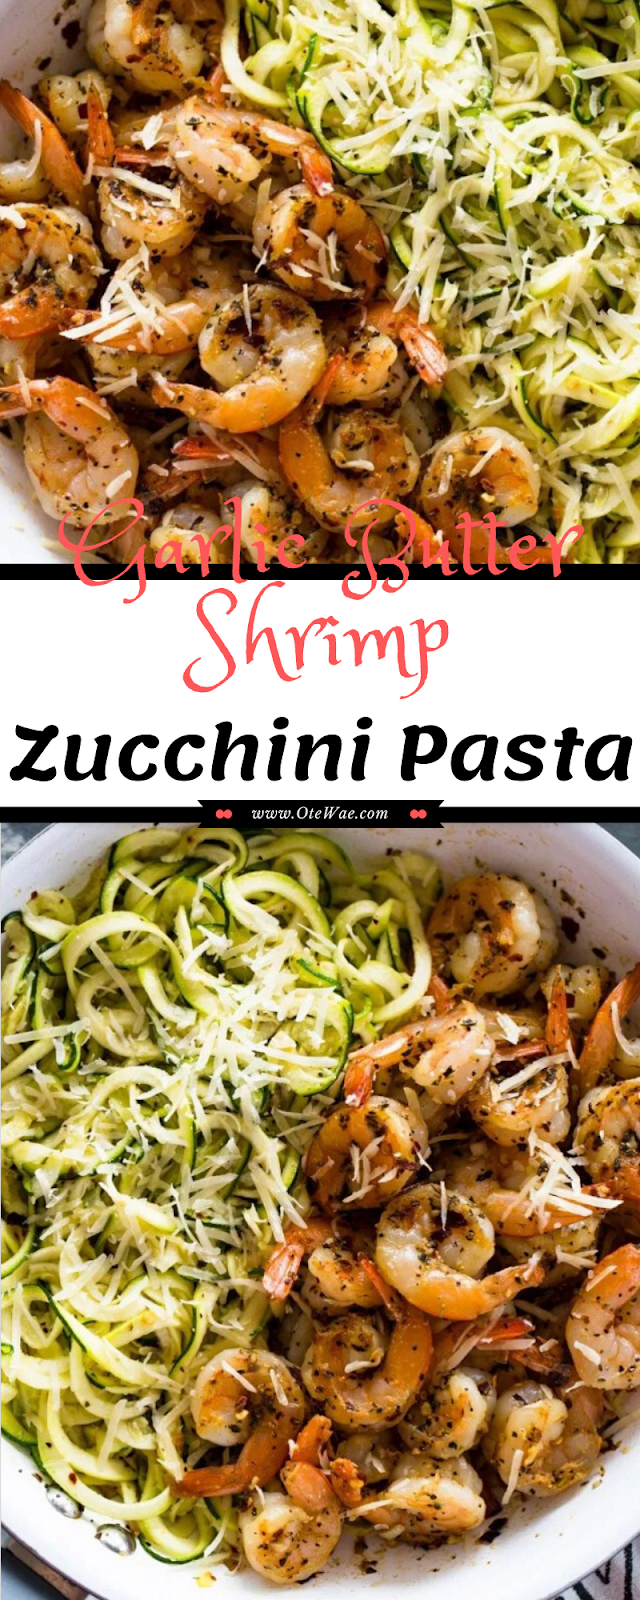 Garlic Butter Shrimp Zucchini Pasta